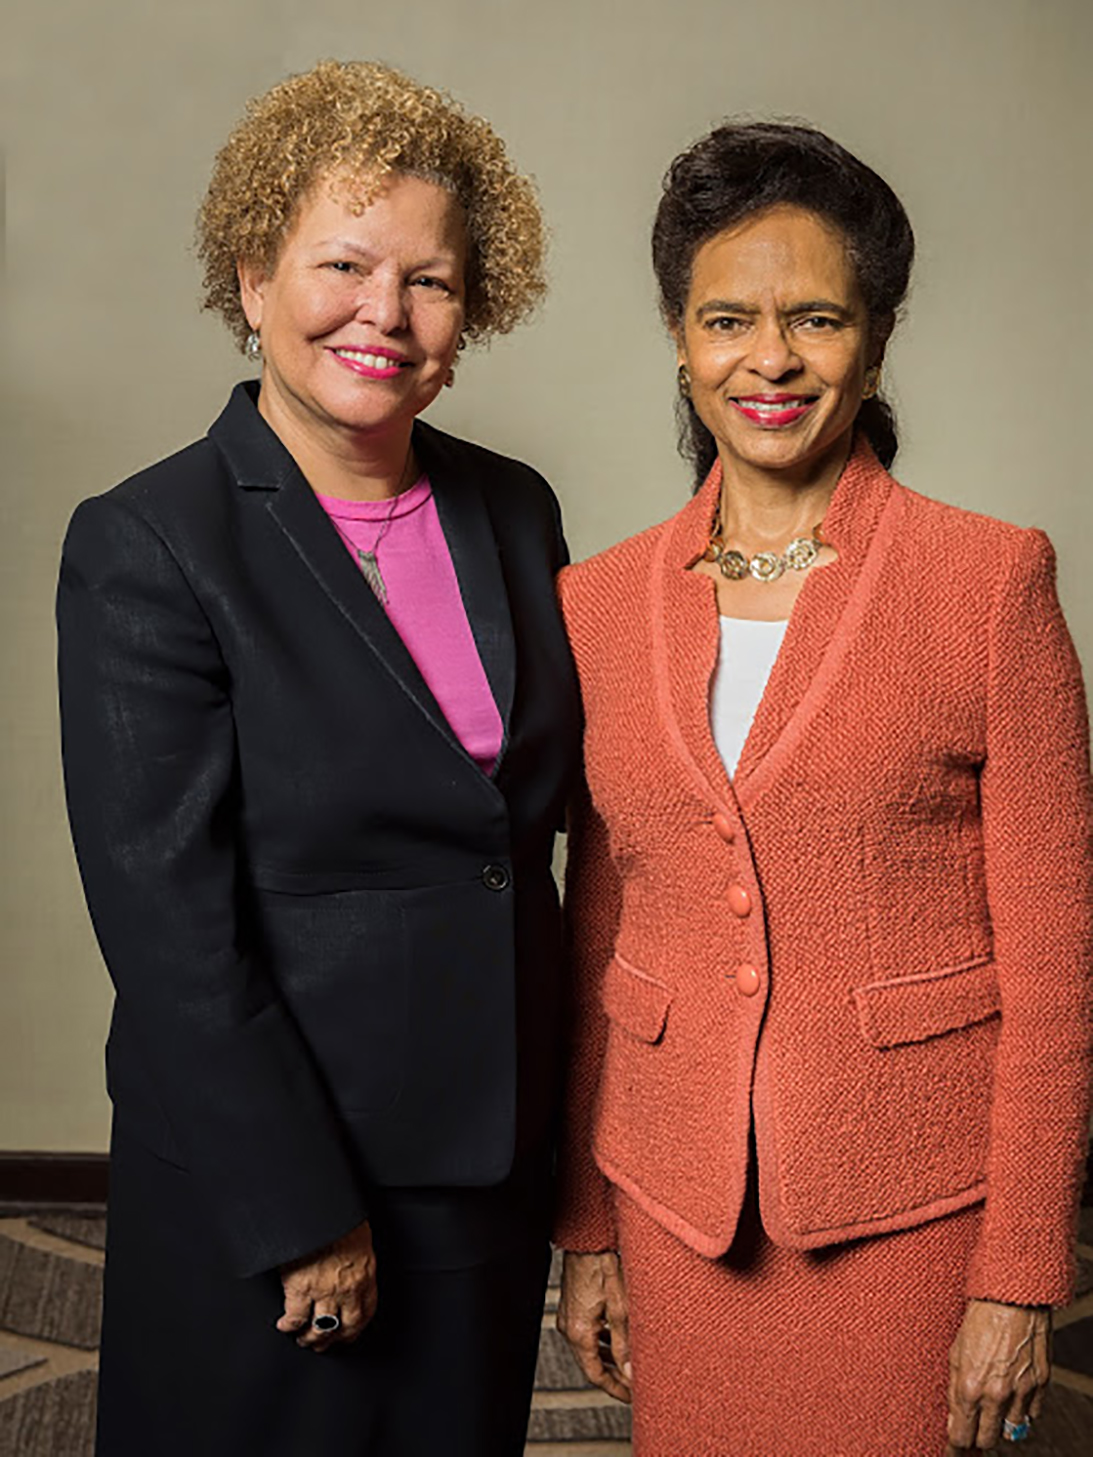 Debra Lee, left, and Mary Bush, right, board directors at Marriott International, Inc. (Photo: Courtesy of Marriott International, Inc.)